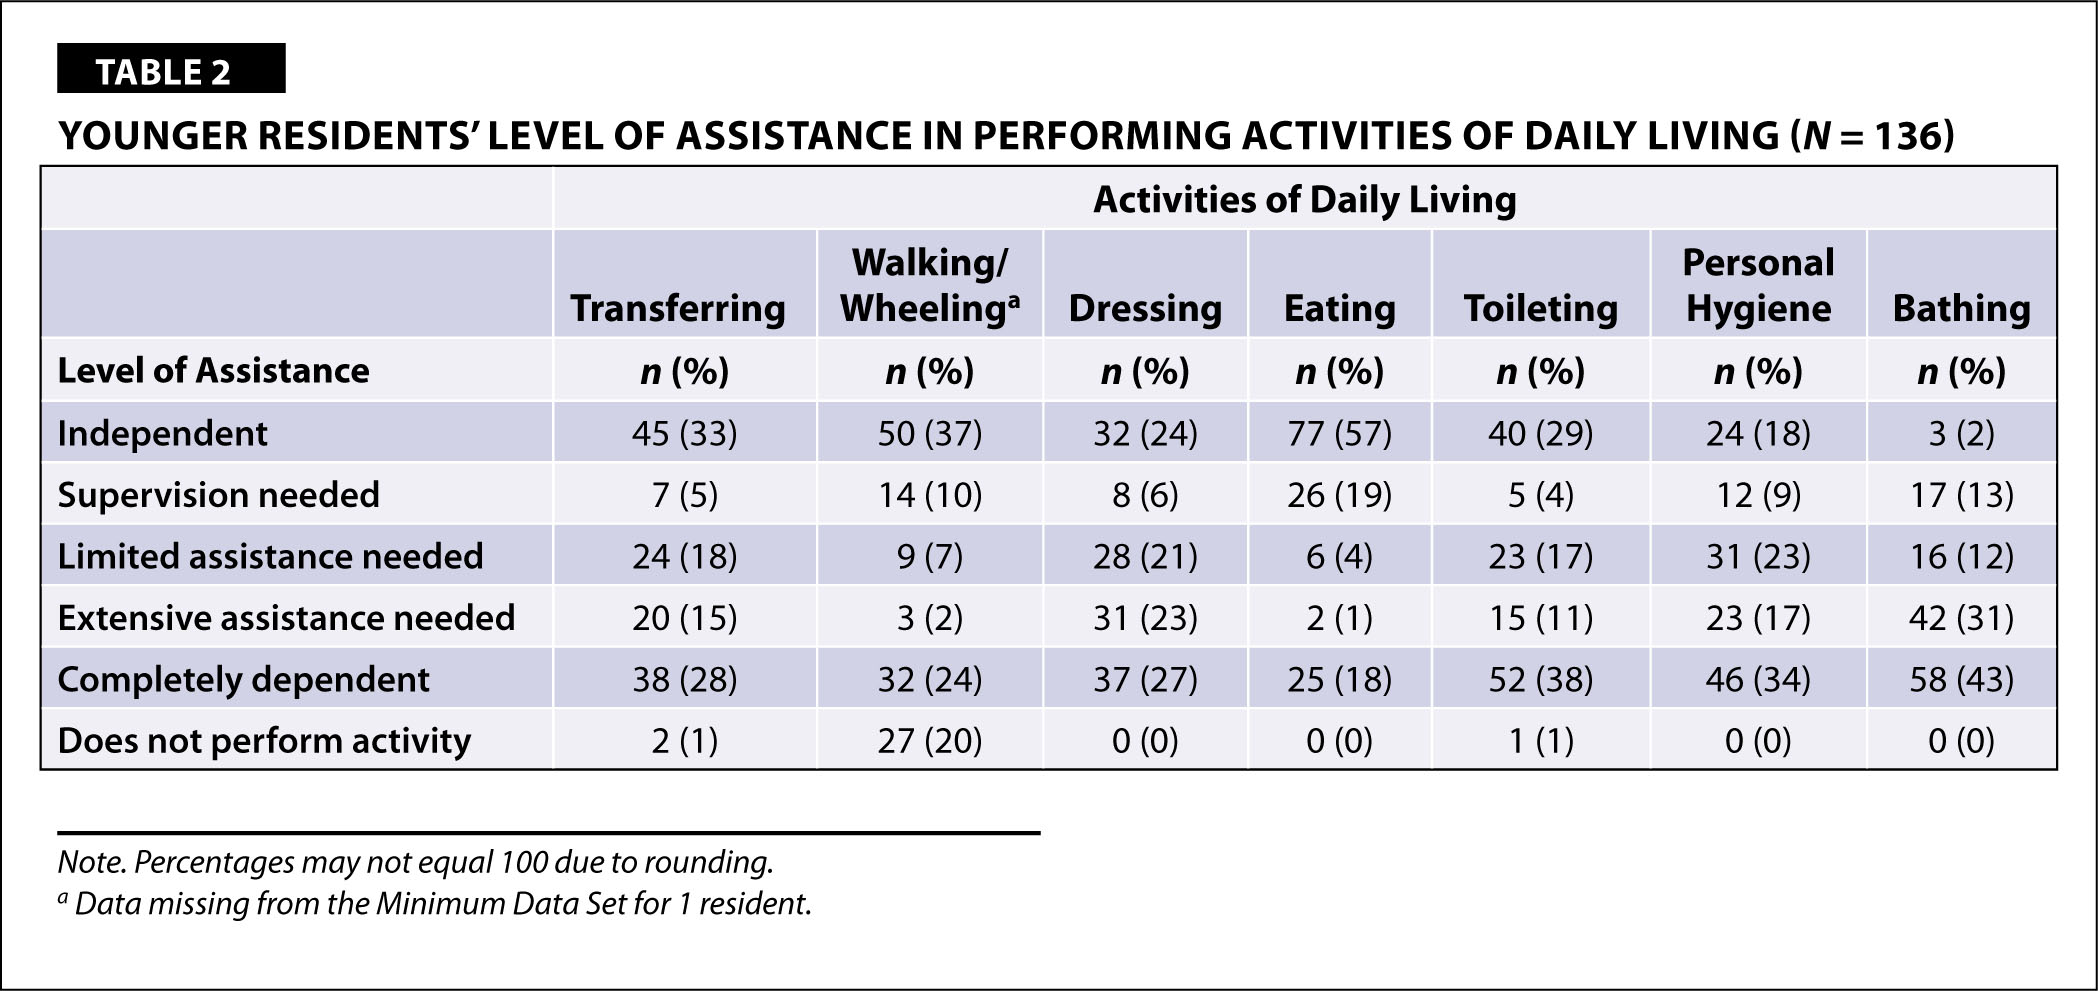 Younger Residents' Level of Assistance in Performing Activities of Daily Living (N = 136)